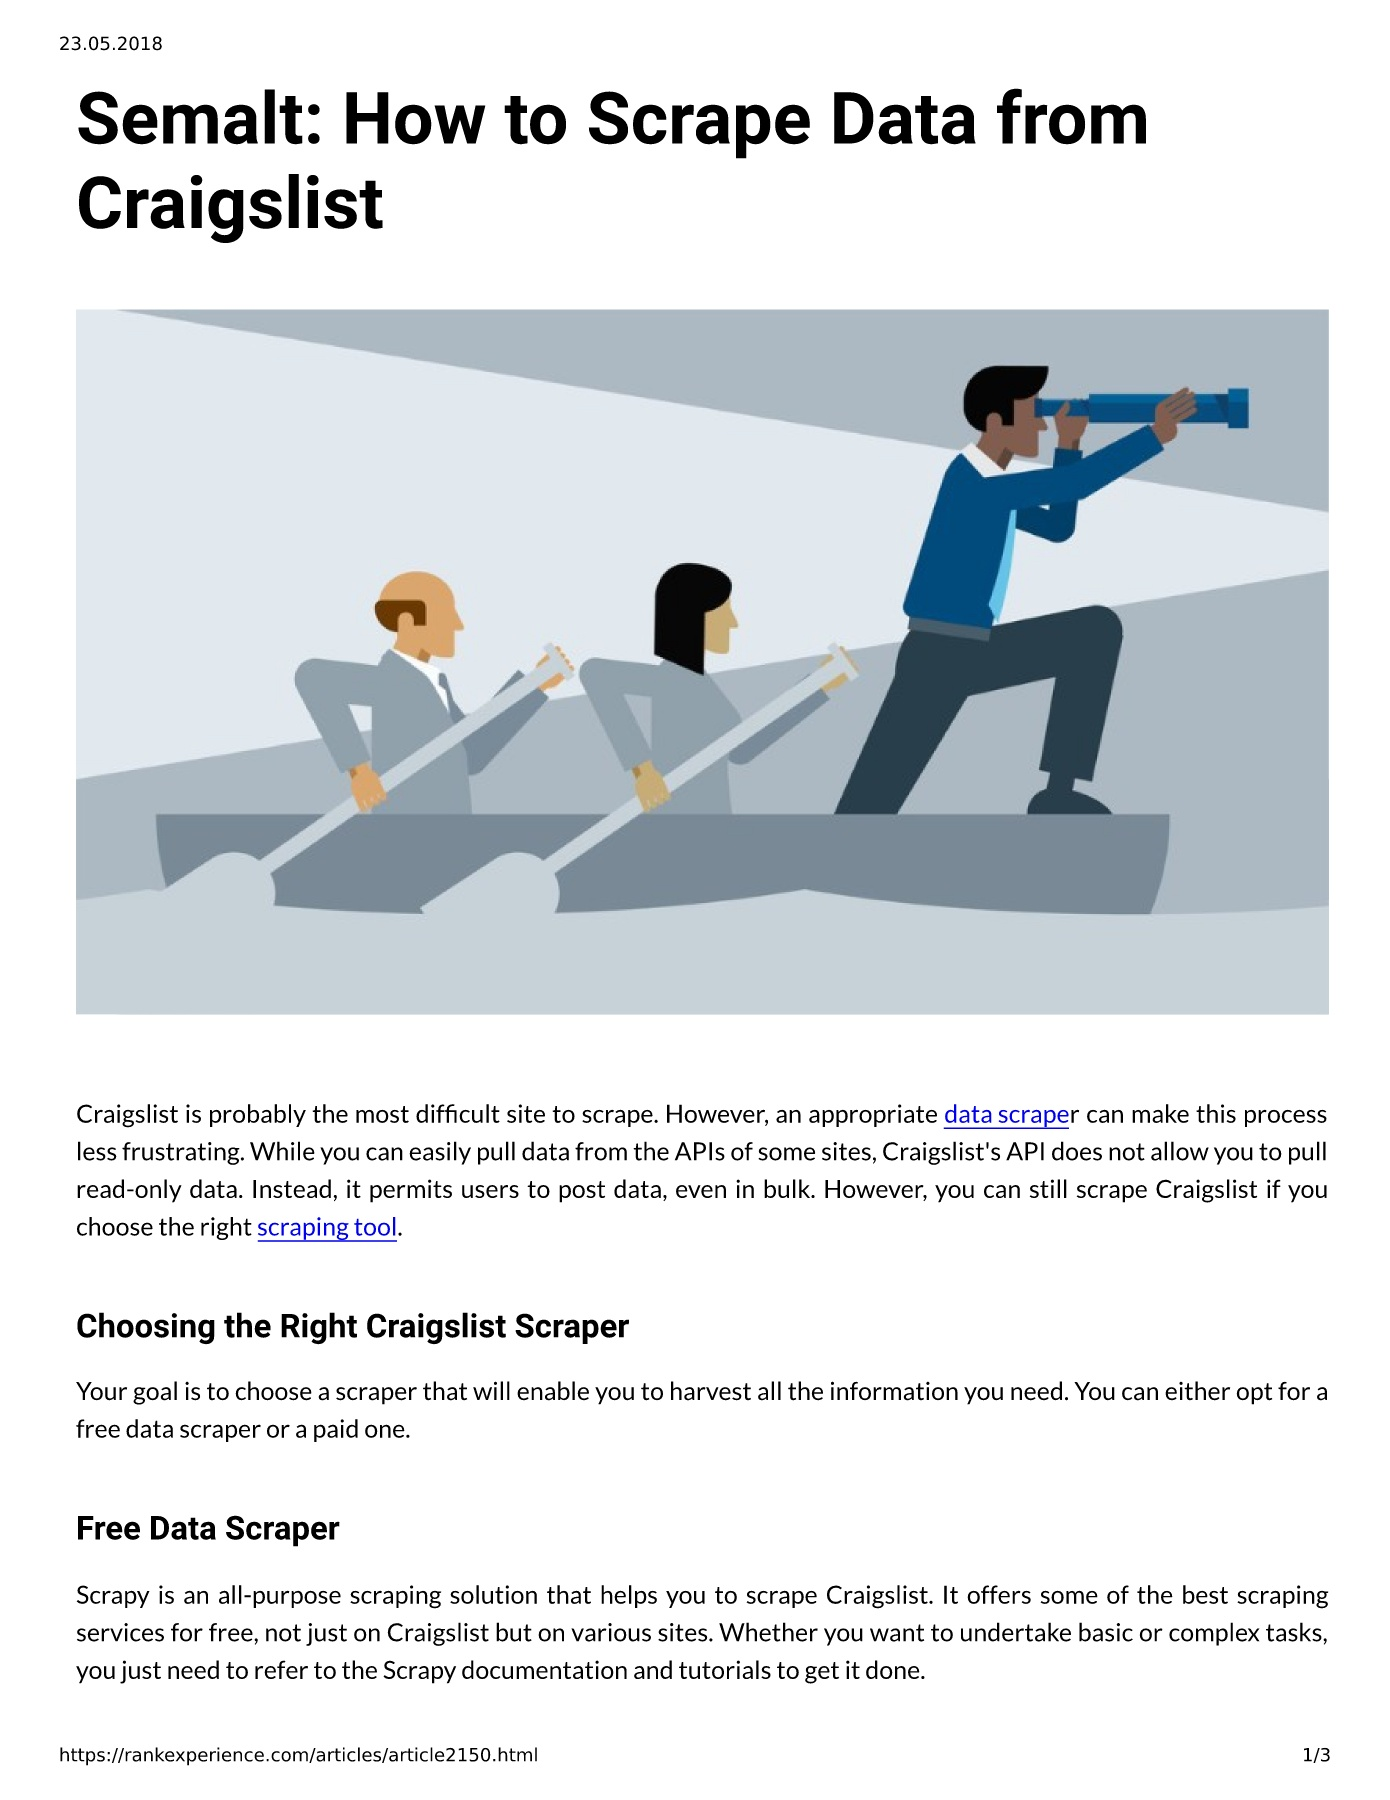 Semalt: How to Scrape Data from Craigslist Pages 1 - 3 - Text